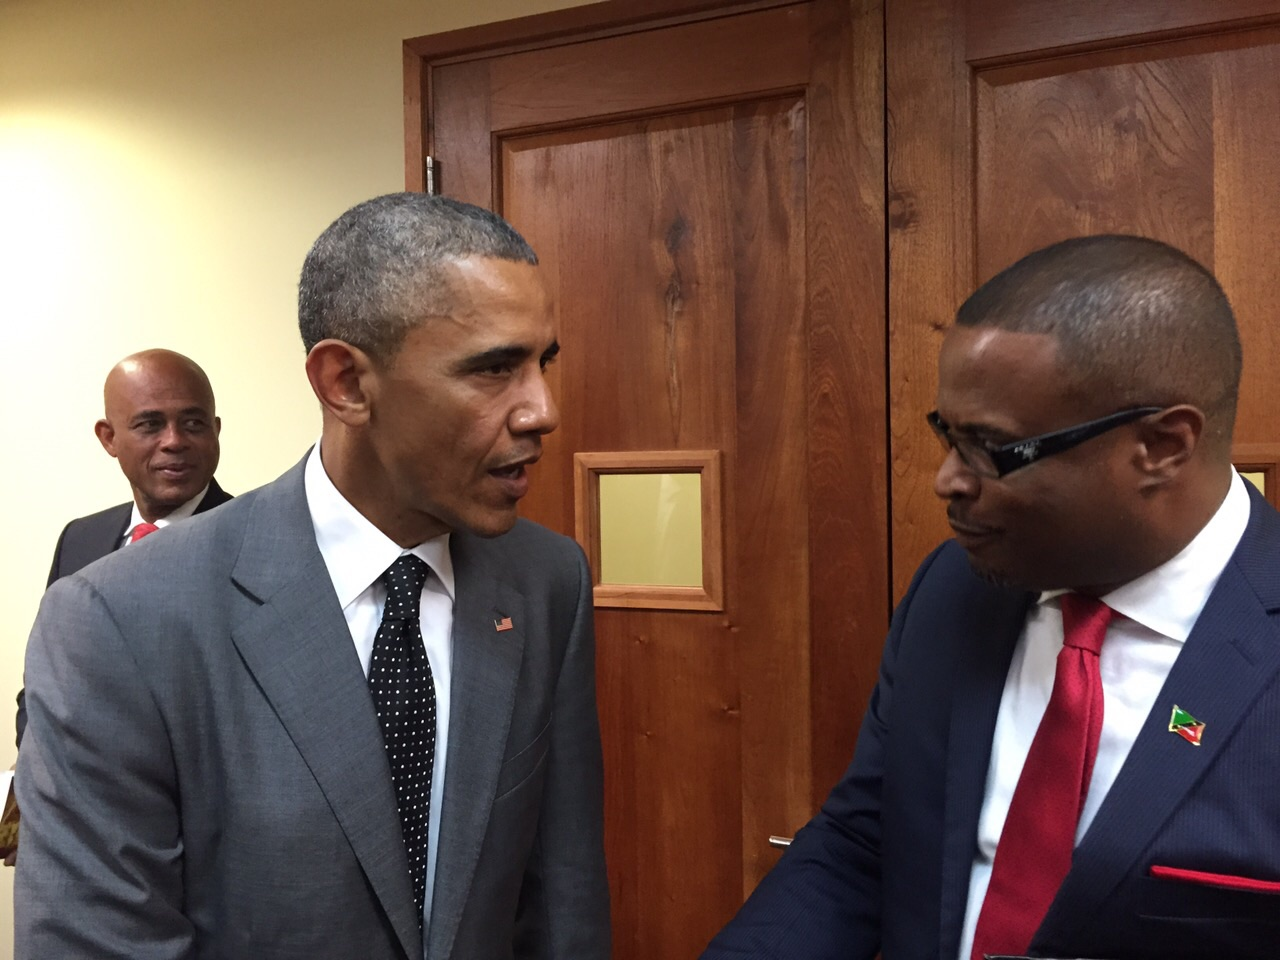 Federal Minister of Foreign Affairs and Deputy Premier of Nevis Hon. Mark Brantley (right) speaks with United States of America President Barack Obama during the US-CARICOM Summit in Jamaica on April 09, 2015